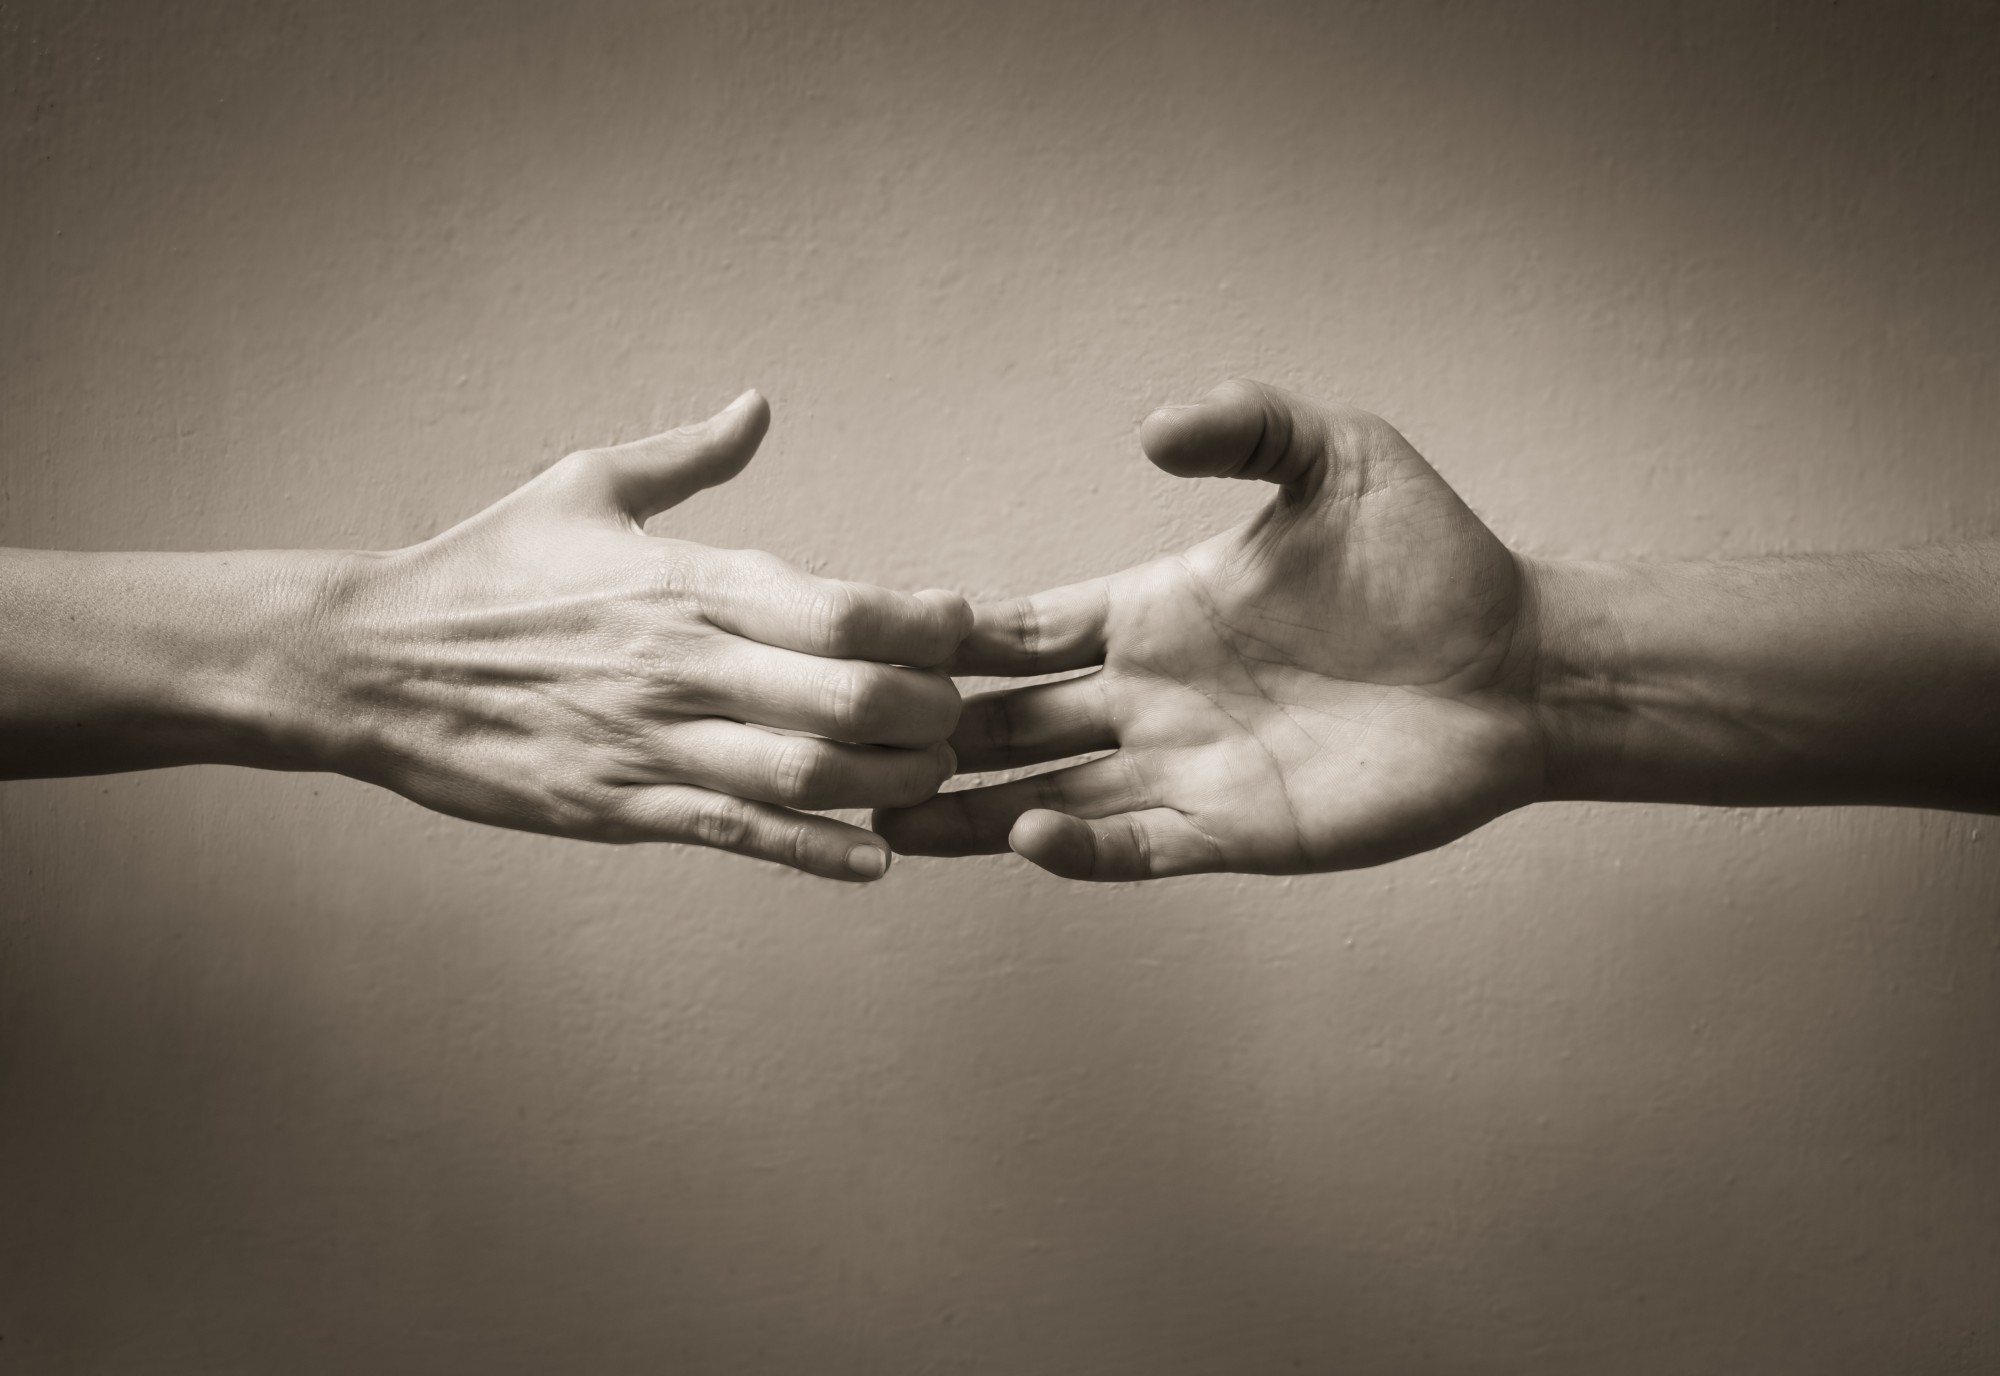 A black and white image of two hands pulling apart, as if there were until just now holding each other but now drift apart.